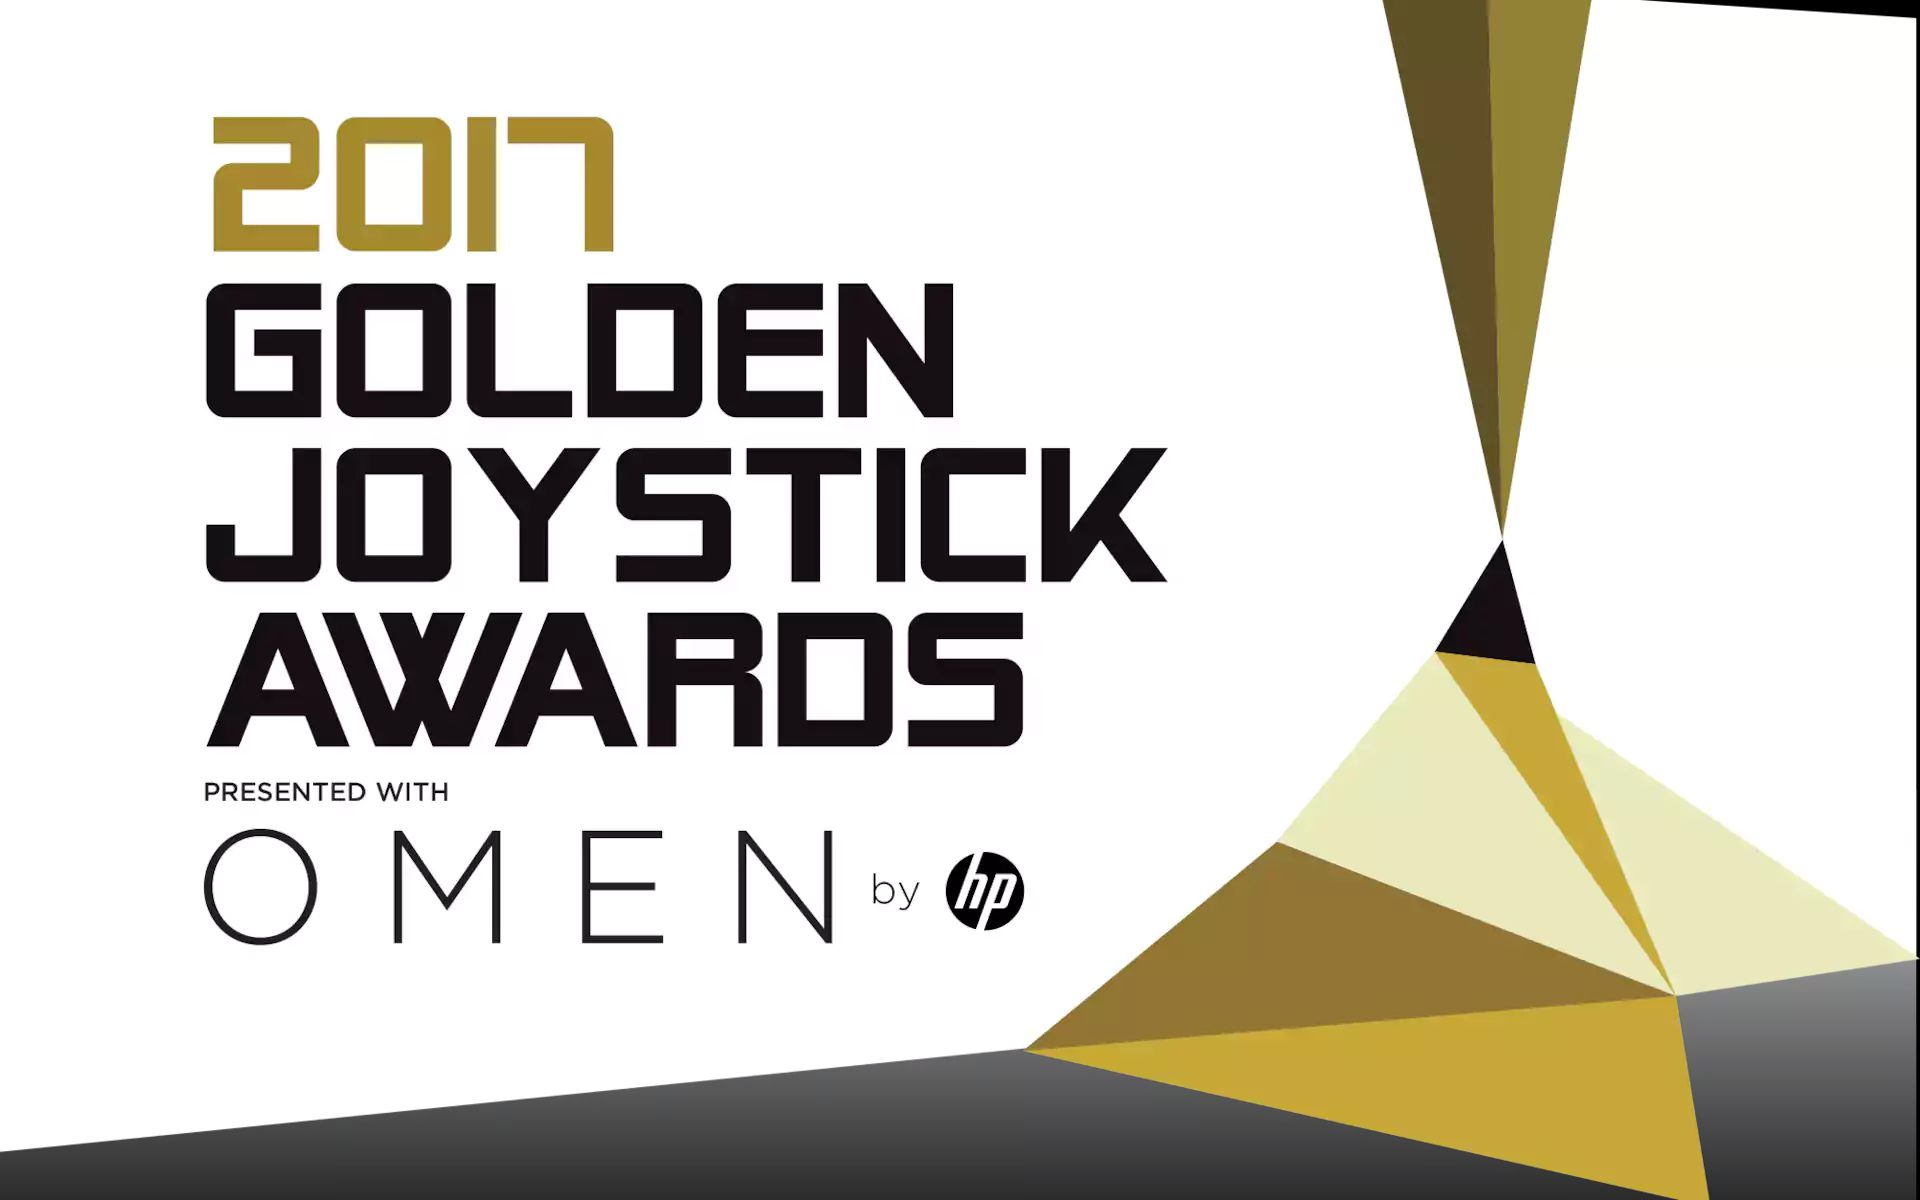 Breath of the Wild Wins Game of the Year 2017 in the Golden Joystick Awards